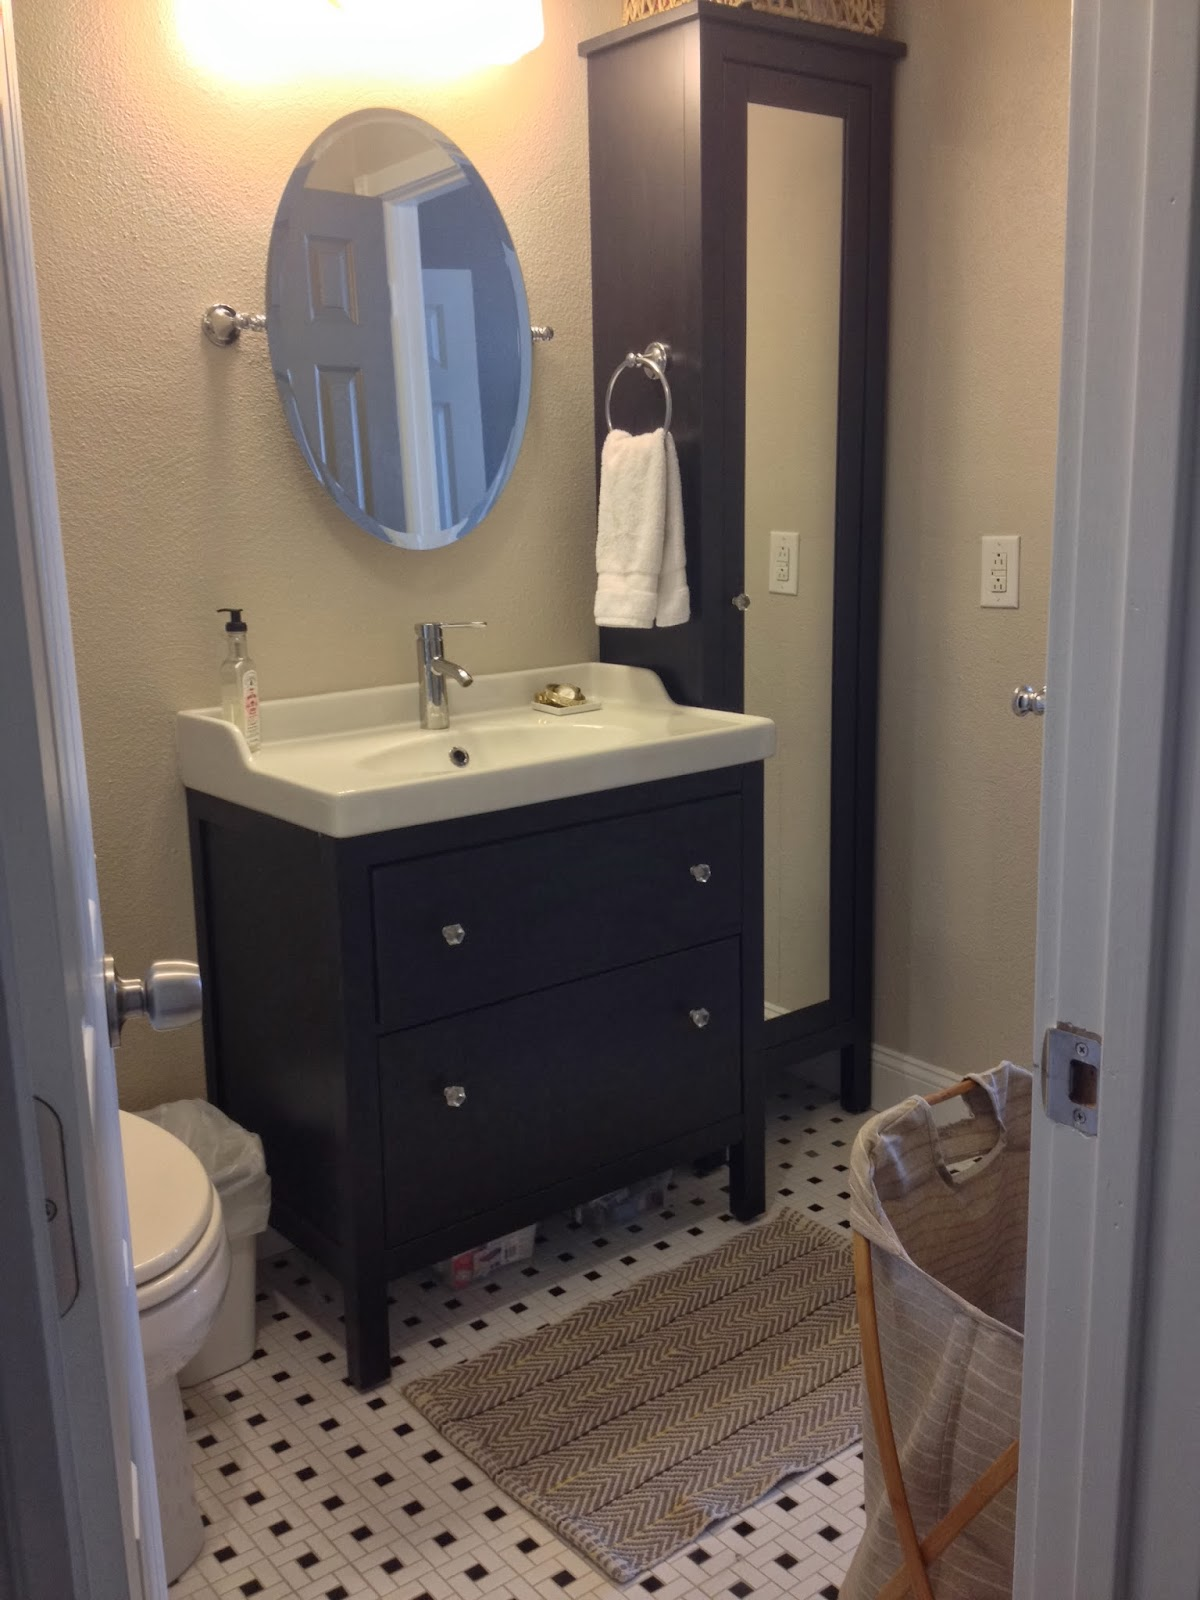 Bathroom remodel reveal lindsey does - Vanities for small bathrooms ikea ...